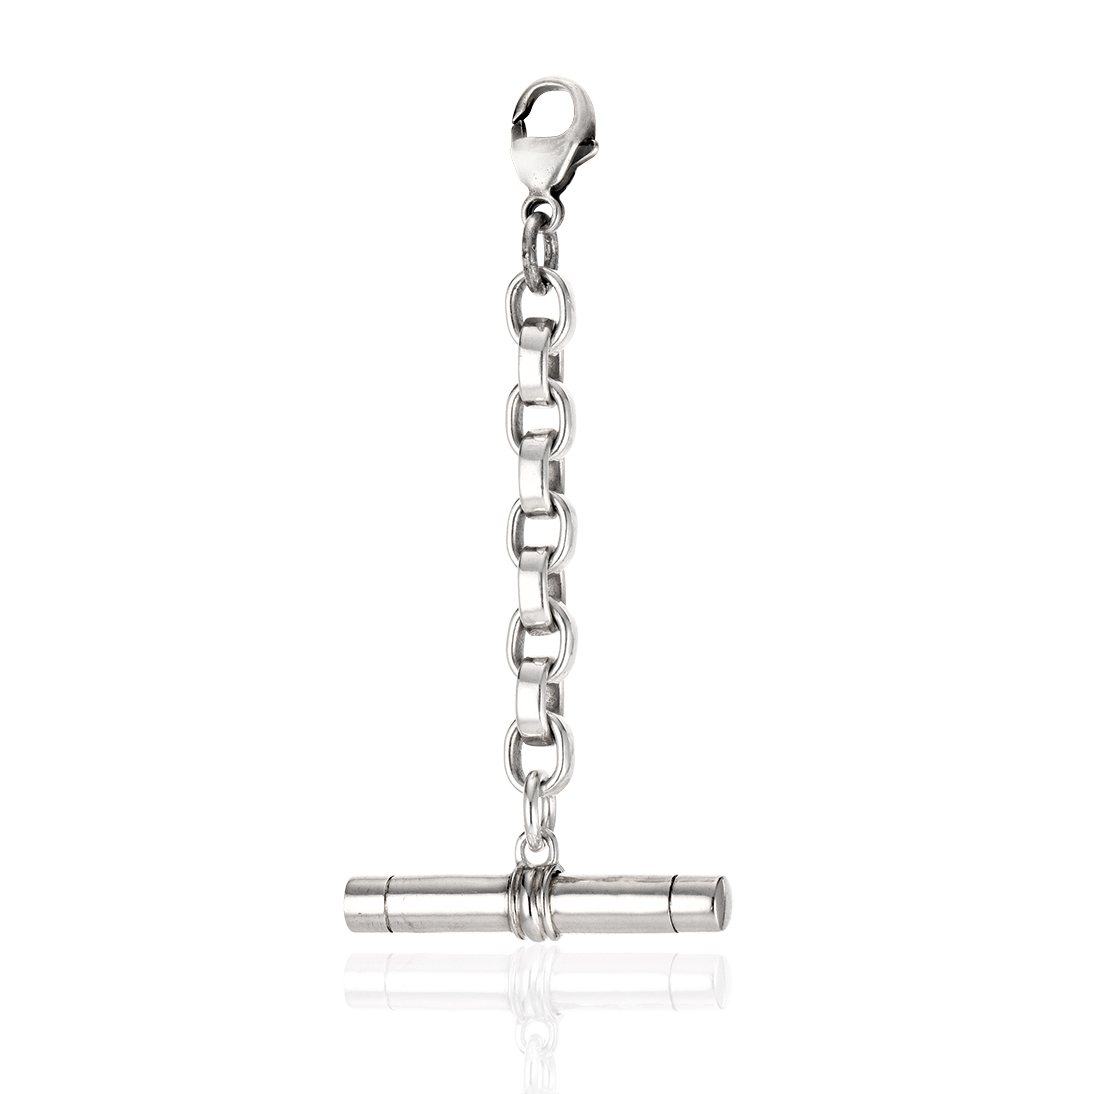 The Cypher Fob Sterling Silver On